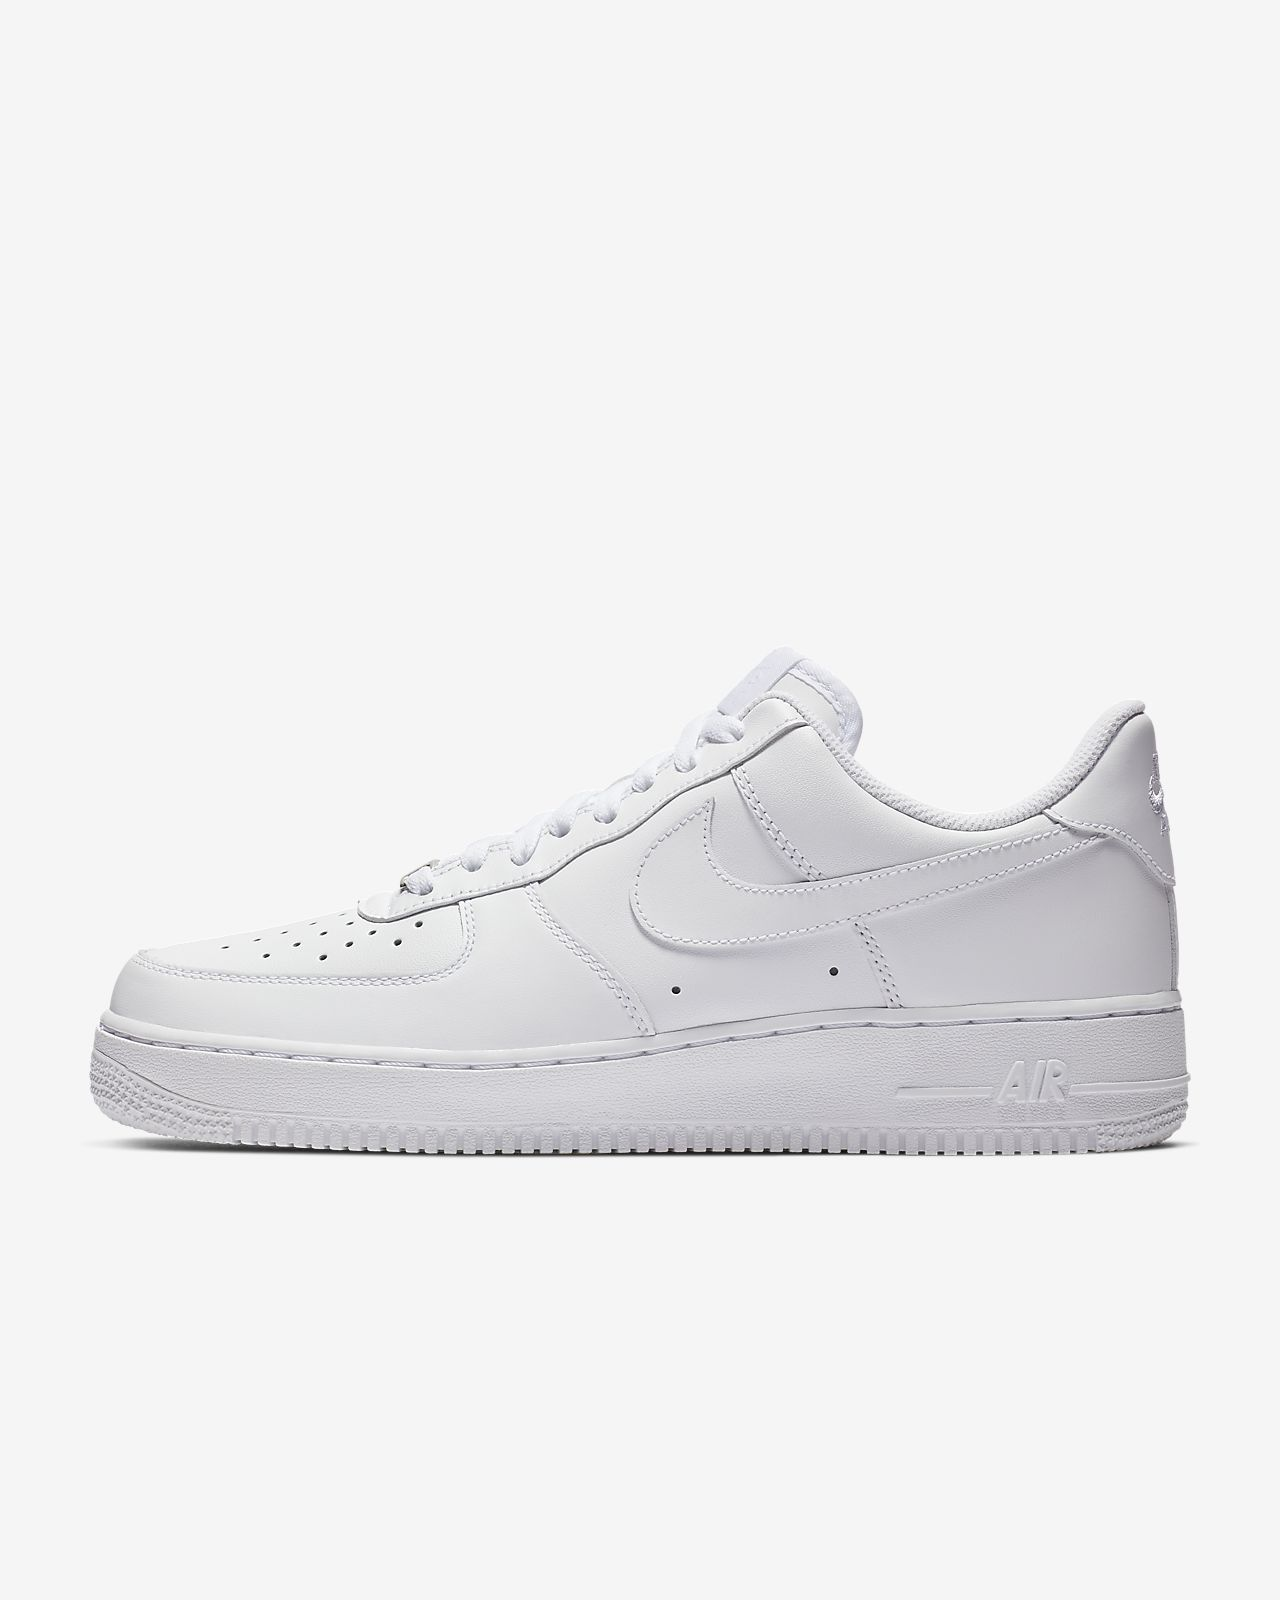 1b594652a Nike Air Force 1 '07 Women's Shoe. Nike.com